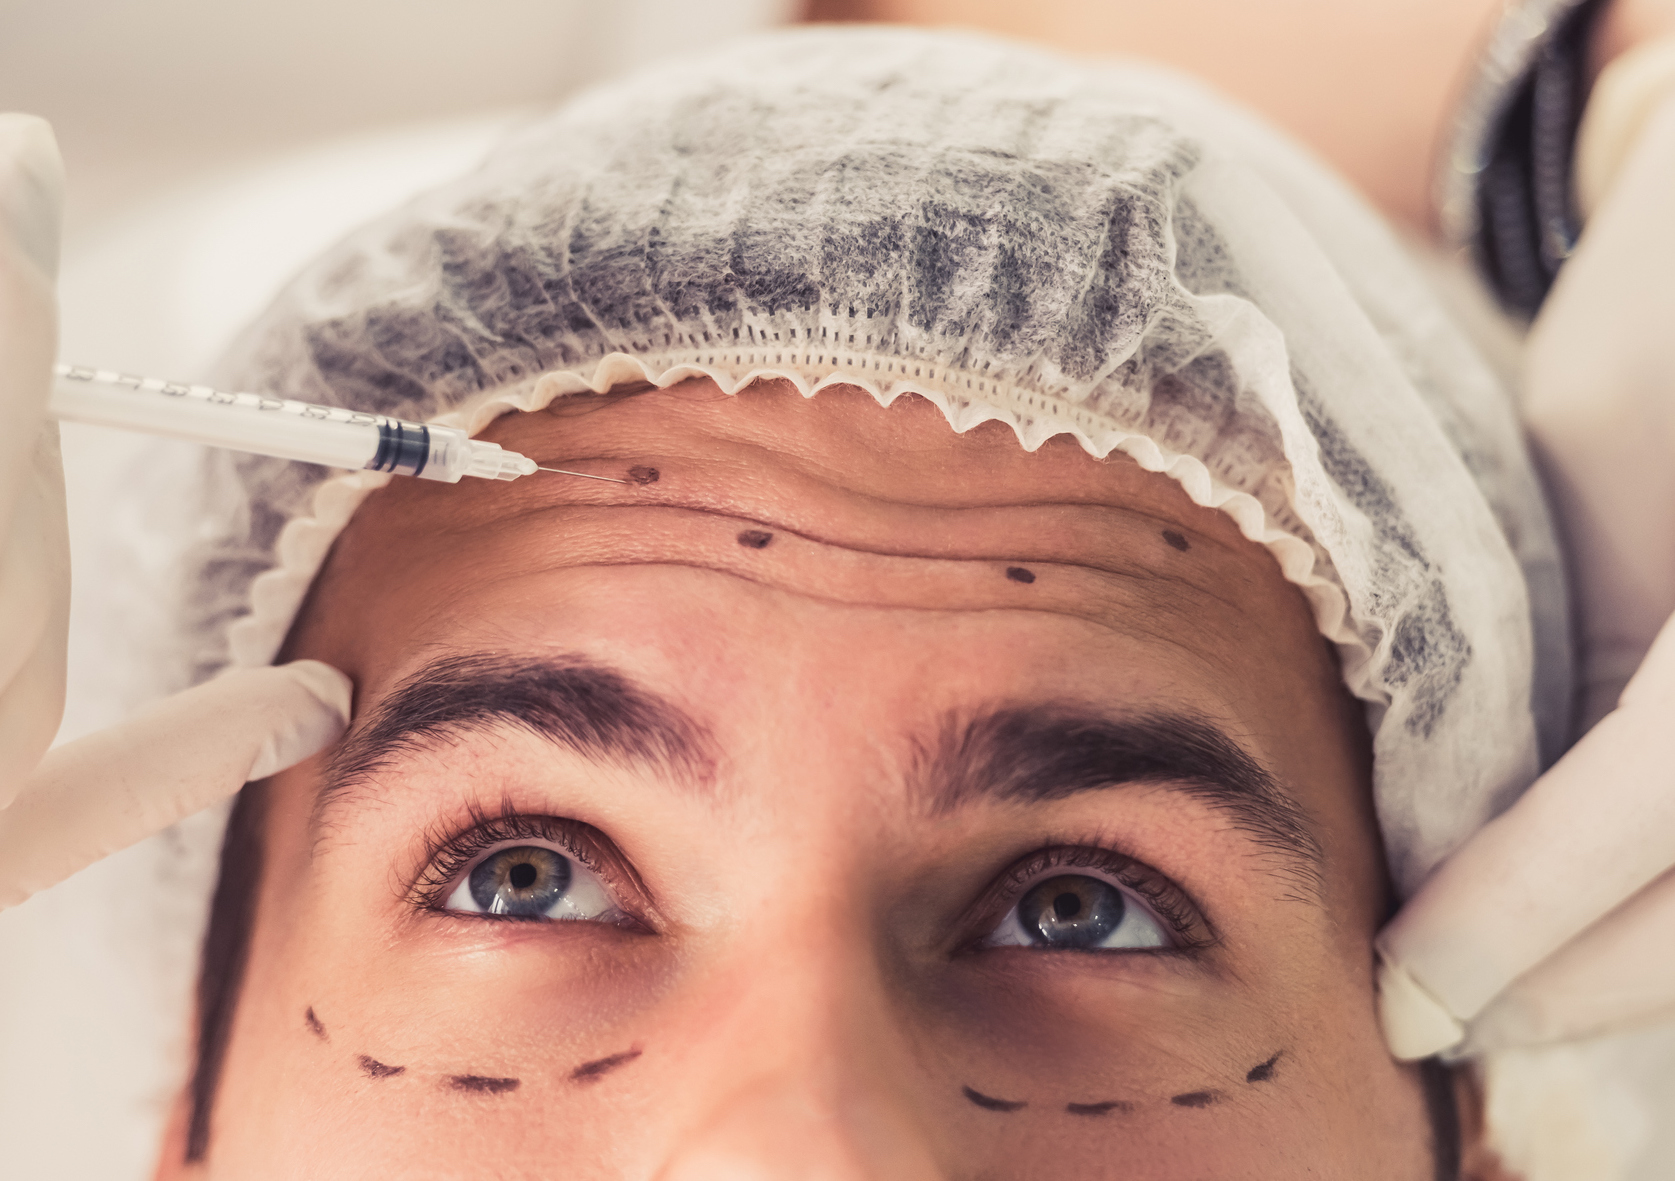 Plastic Surgeons Are Making Bank Thanks To People Who Are Worried About Looking Ugly On Zoom